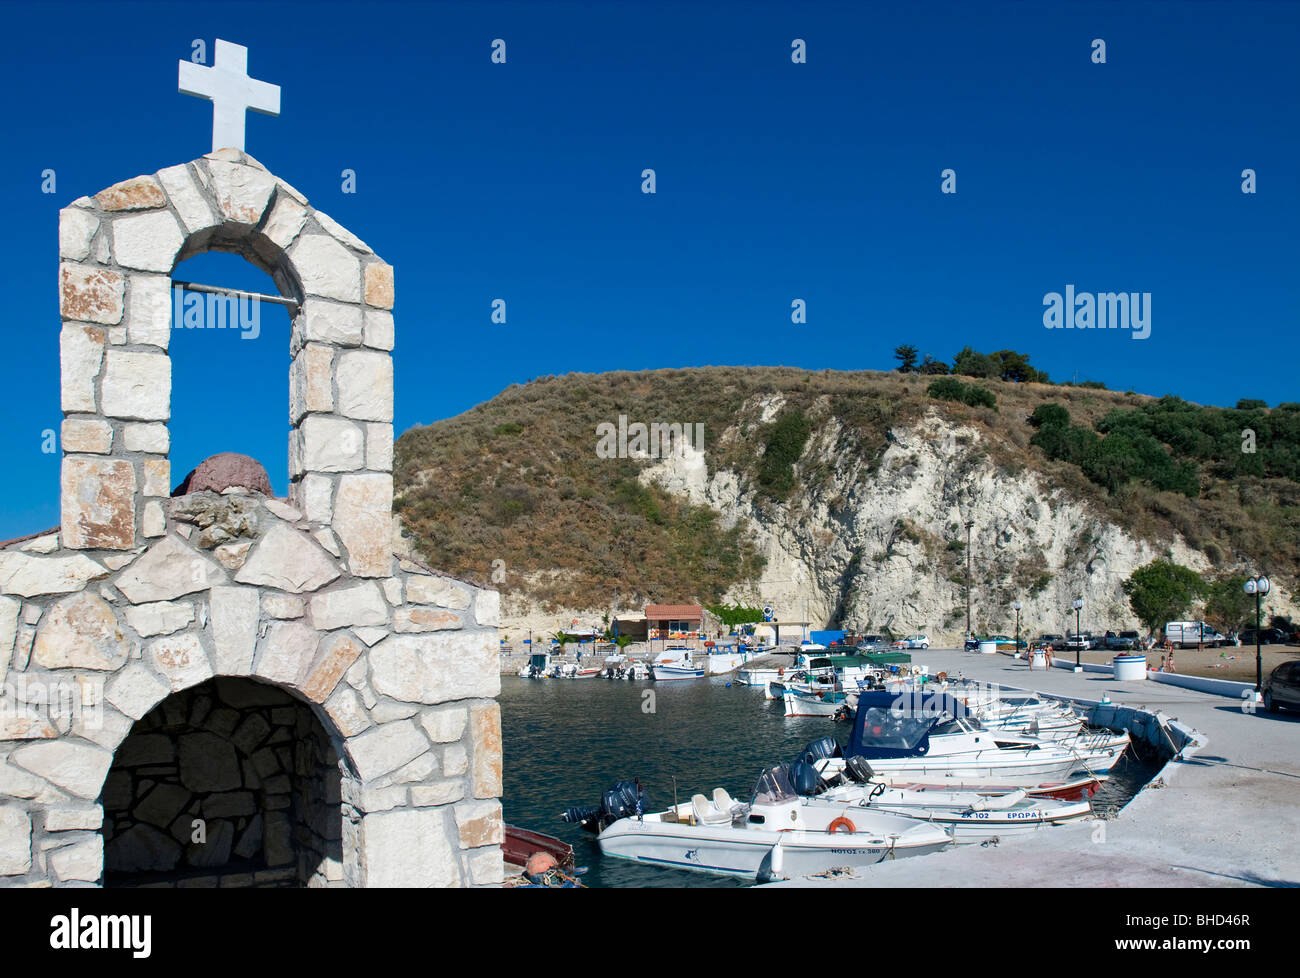 Harbour at Kalyves, Crete, Greece - Stock Image